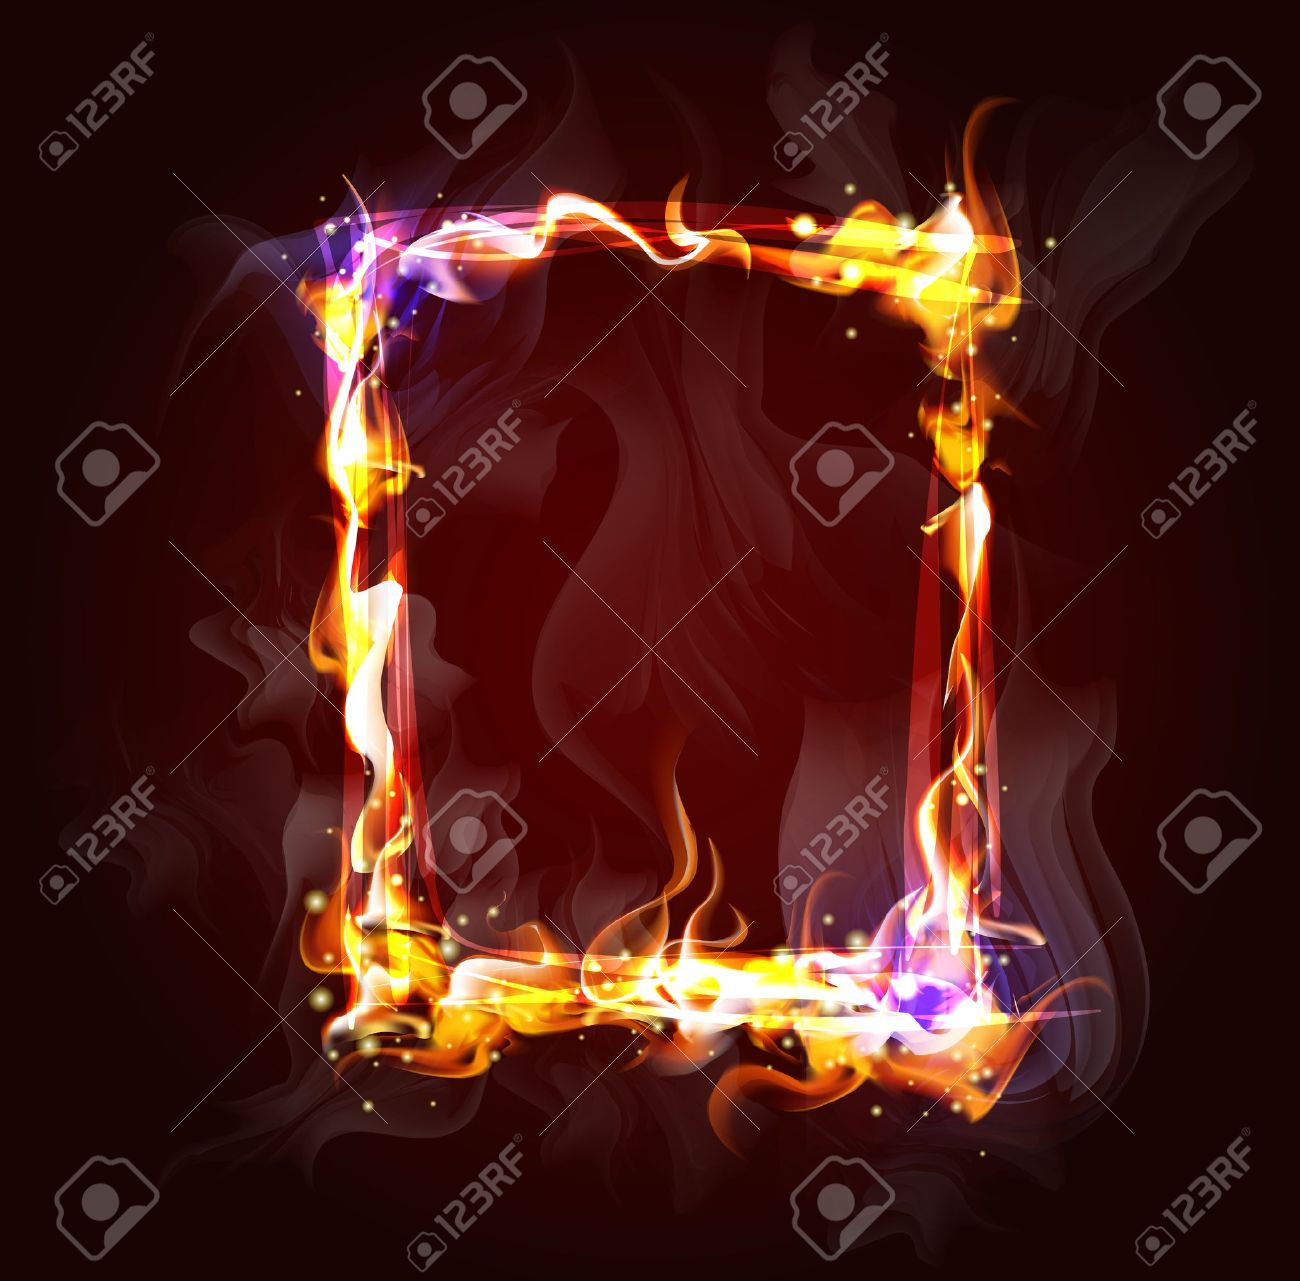 fire frame background for design Stock Vector - 12541065